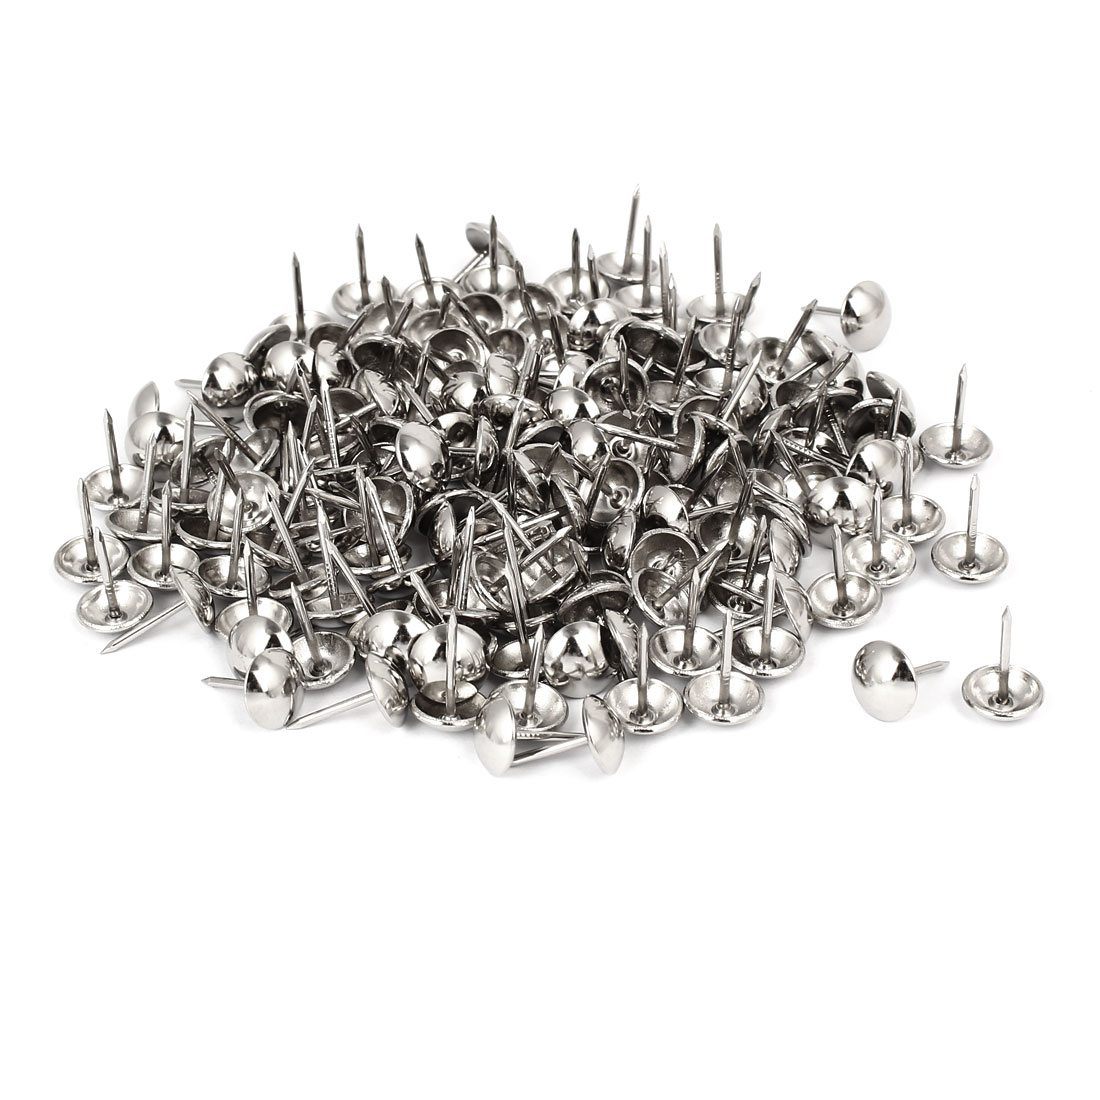 "7/16"" Head Dia 17mm Height Upholstery Nail Thumb Tacks Push Pin Silver Tone 200pcs"